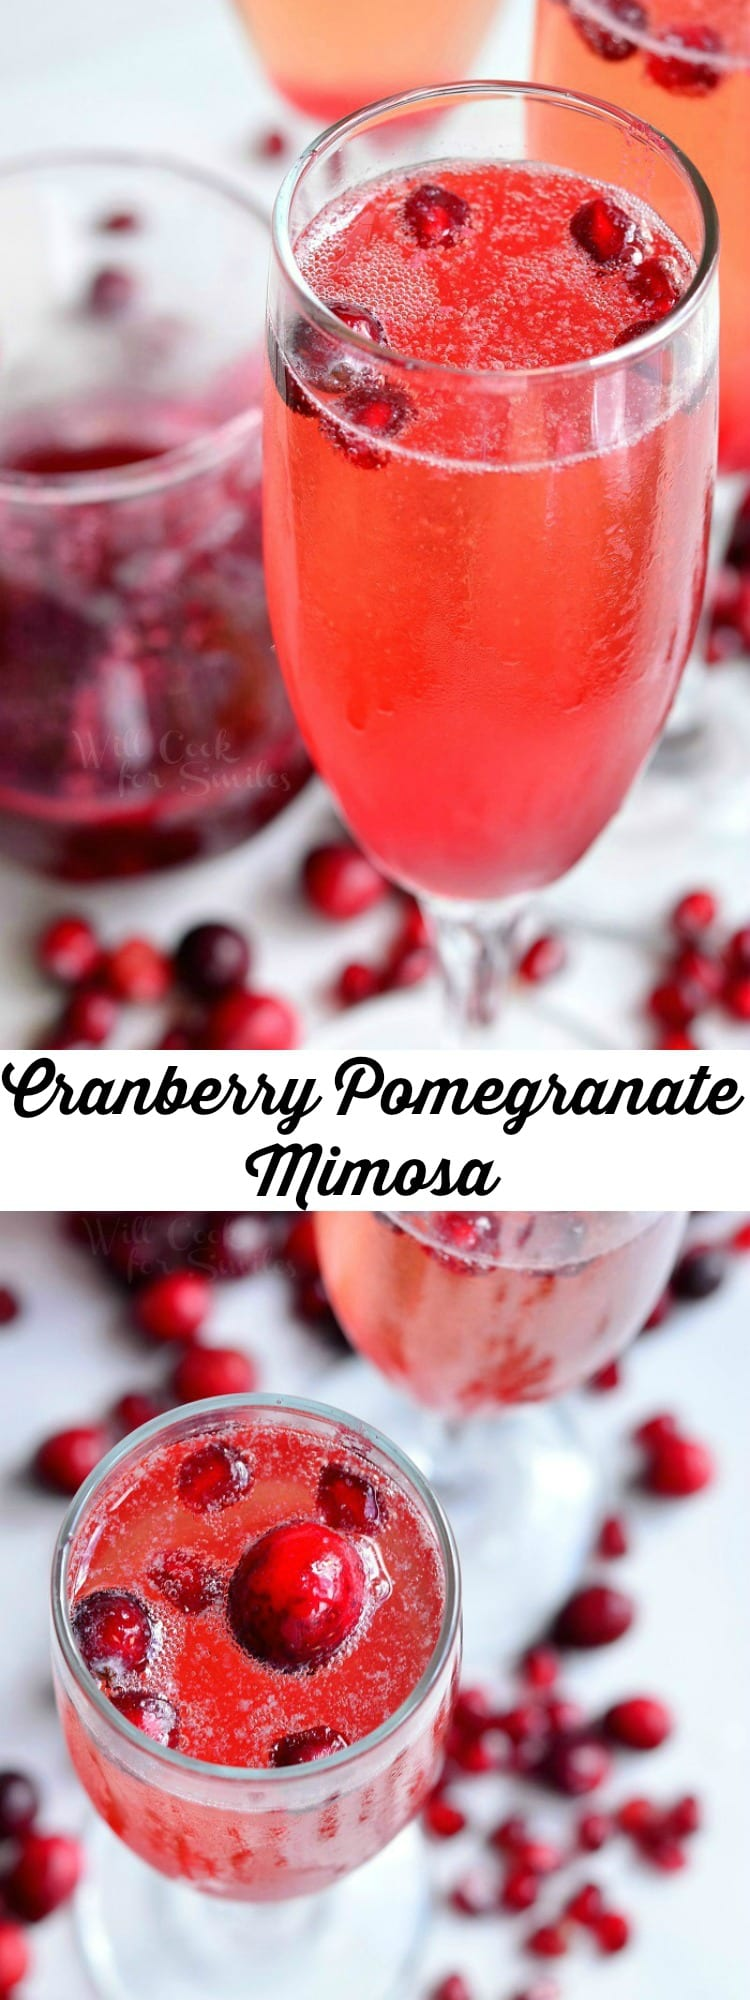 Cranberry Pomegranate Champagne Cocktail in a champagne glass with Pomegranate and cranberries in the glass as garnish and around the bottom of the glass